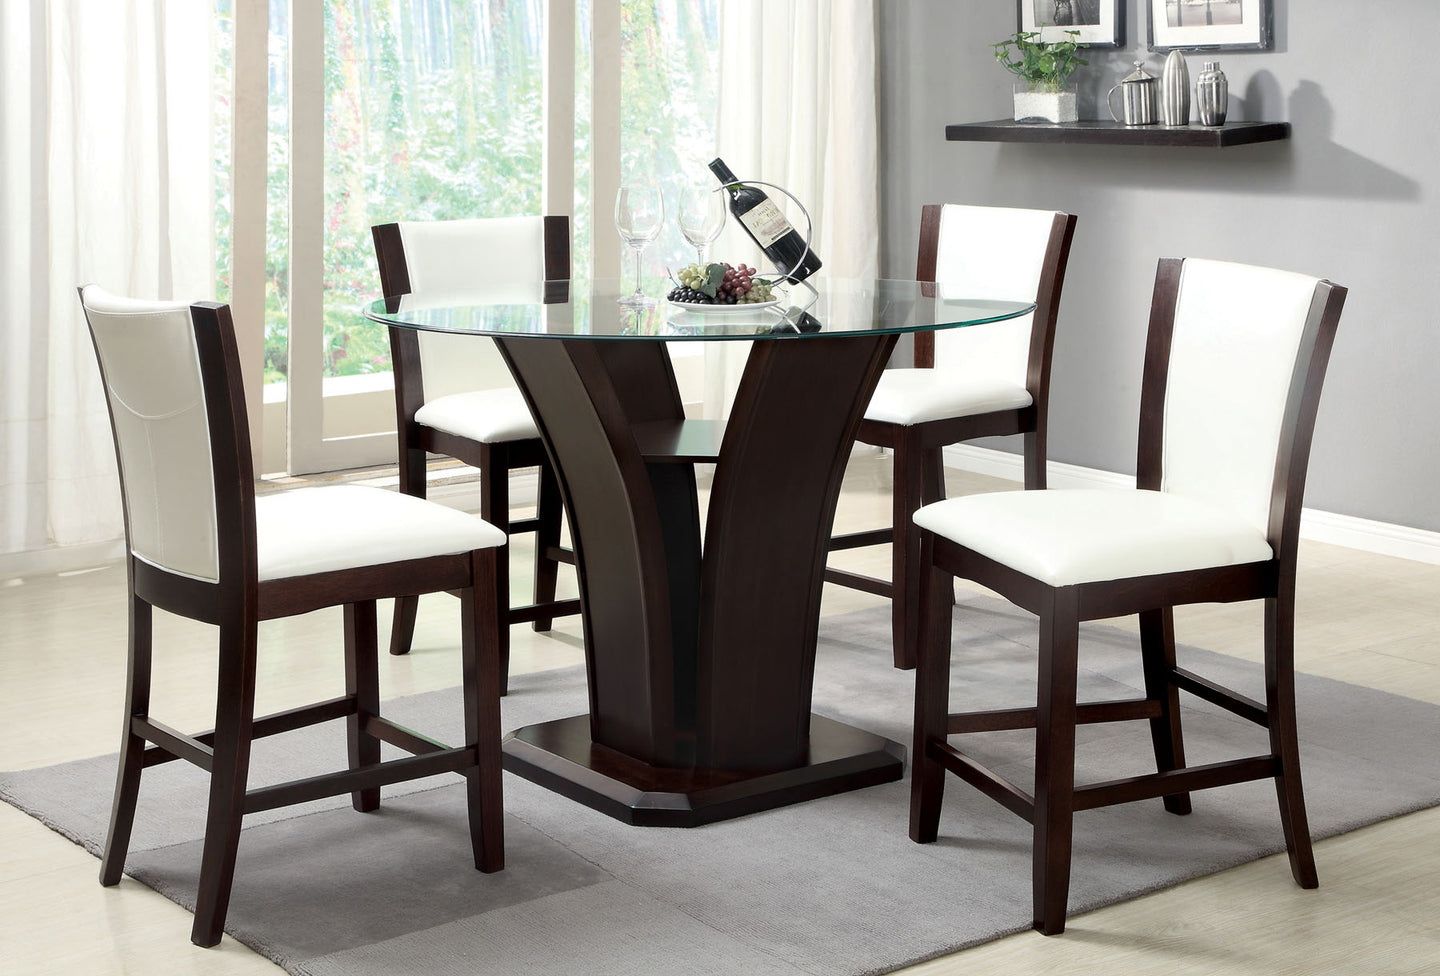 Furniture of America Manhattan III Cherry And White Wood Finish 5 Piece  Counter Height Table Set